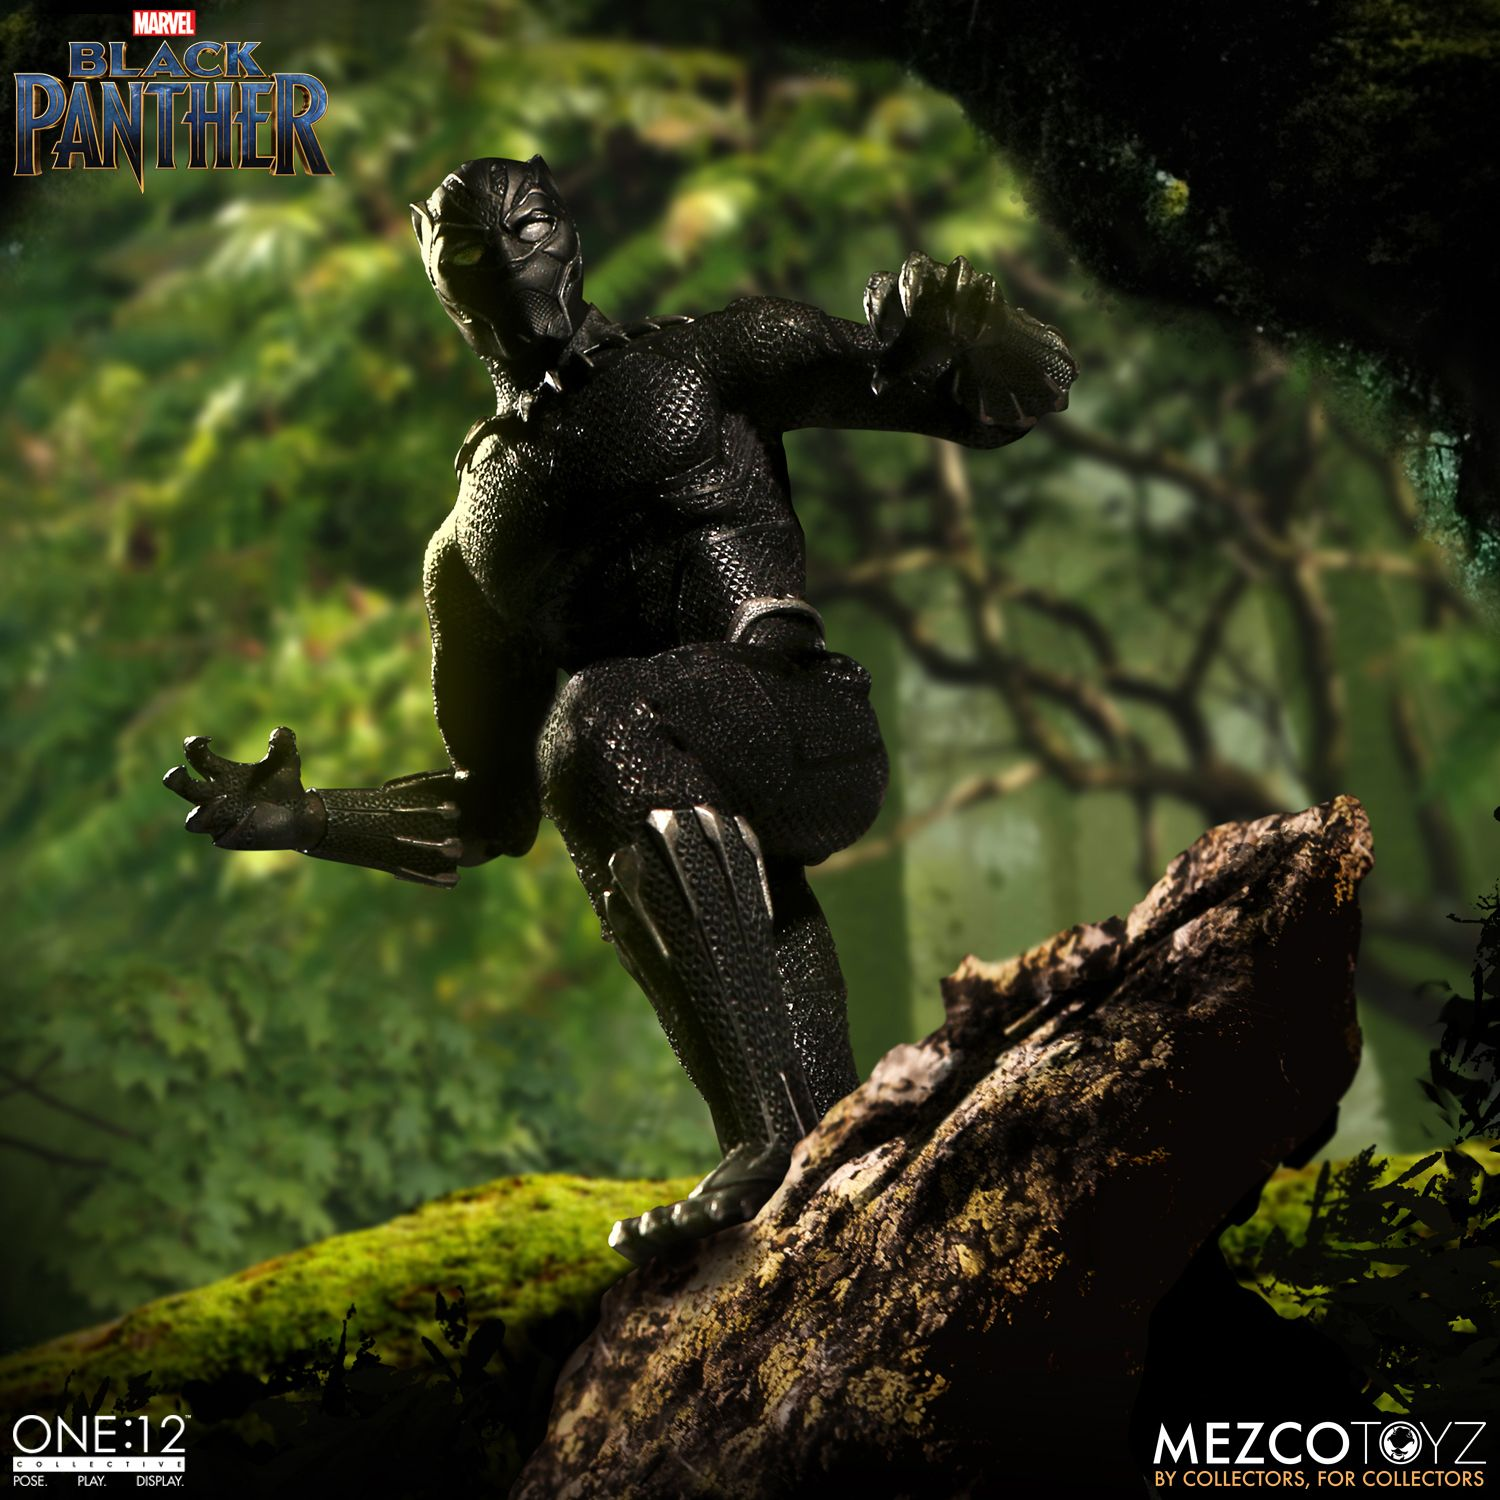 black panther mezco one 12 figure 3